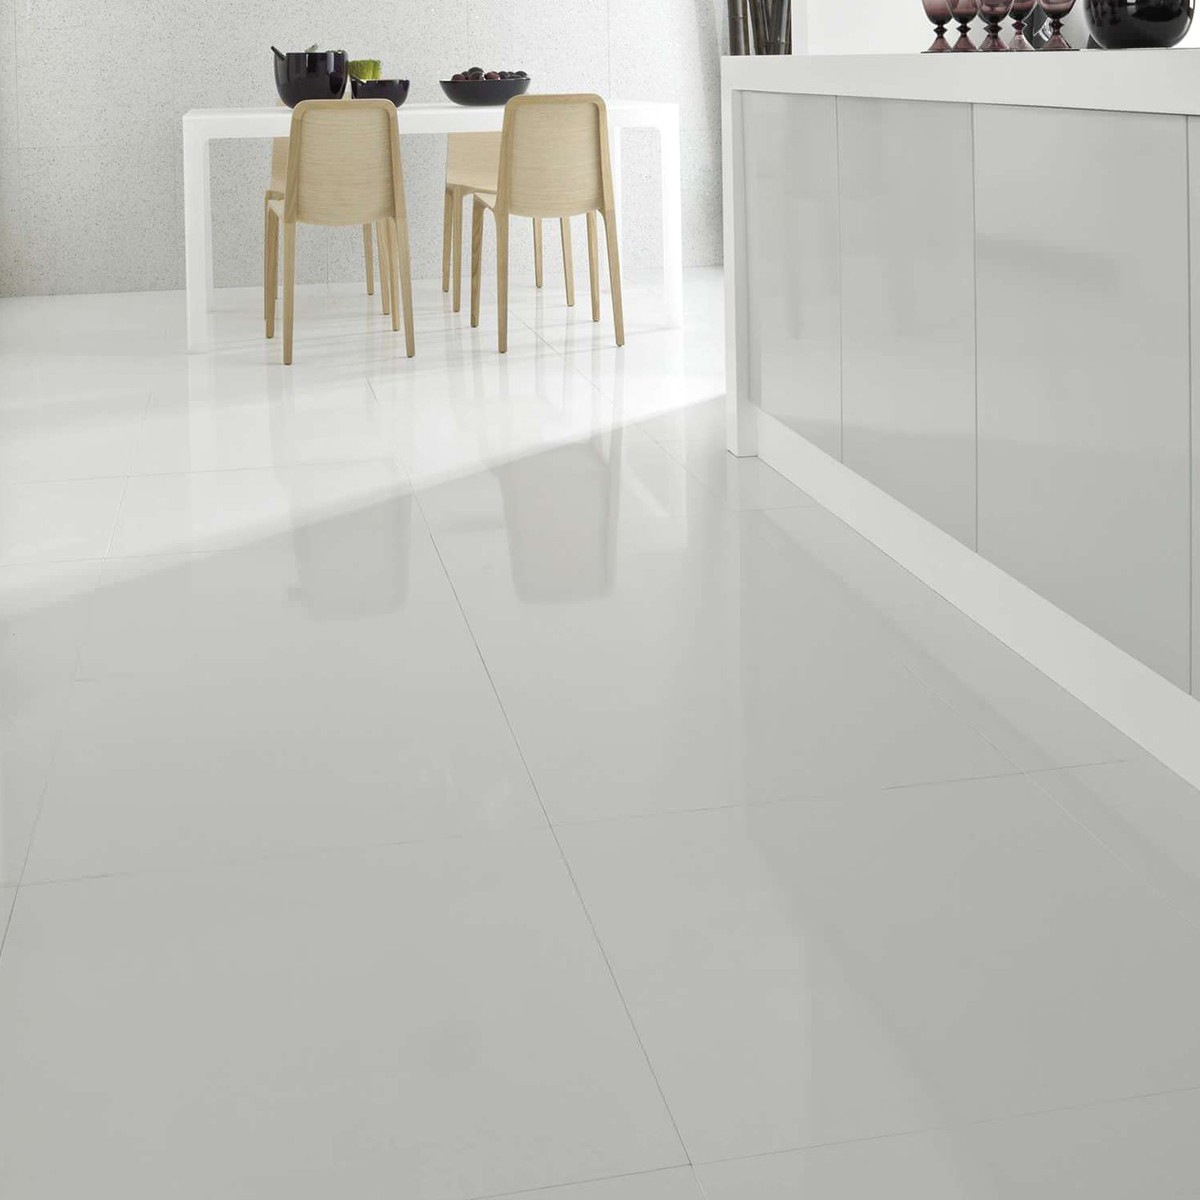 Supreme White Polished Porcelain Floor Tiles regarding dimensions 1200 X 1200